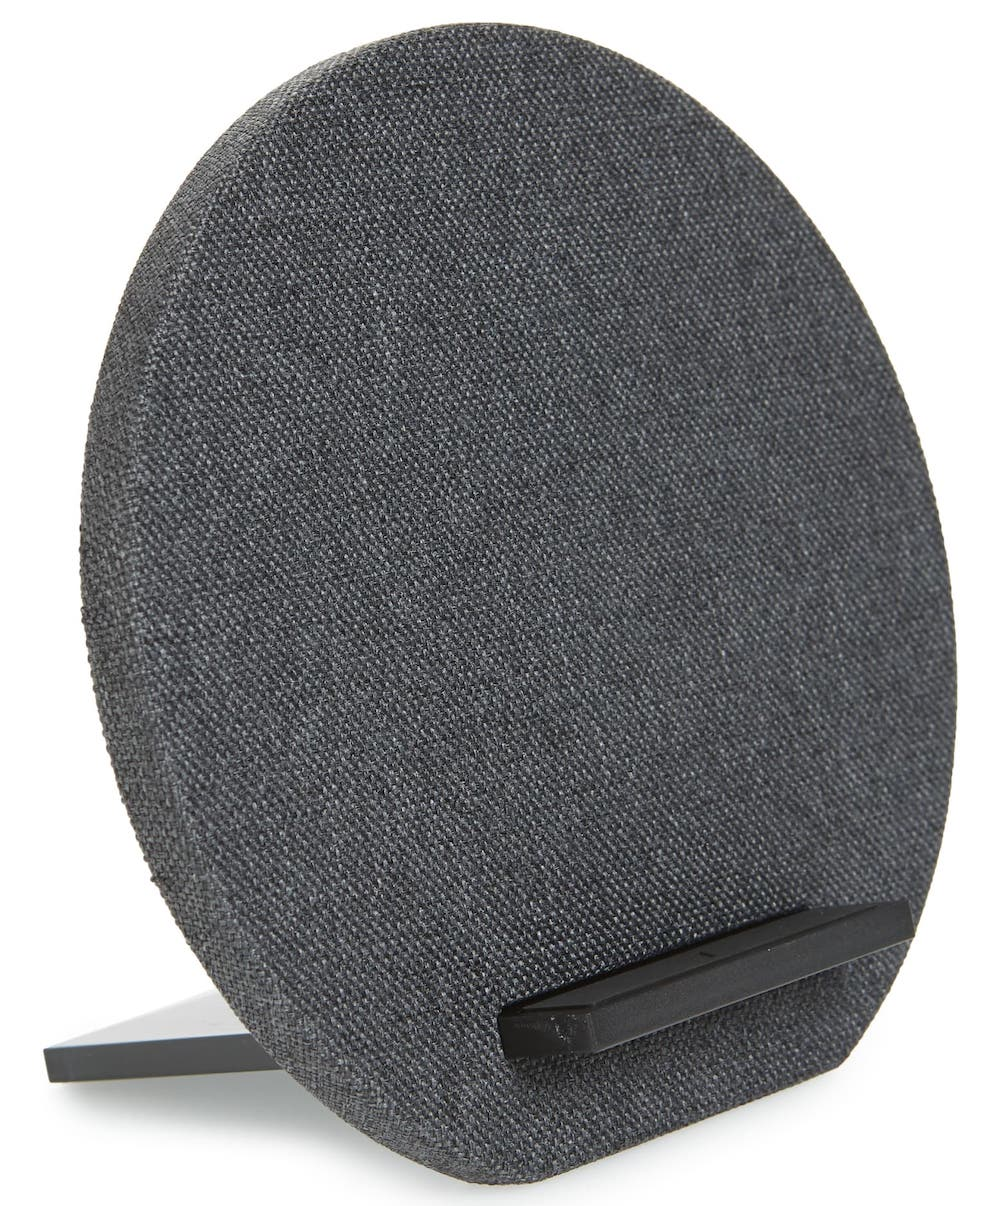 Under $100 white elephant gift ideas. Native Union Dock Wireless Charger.